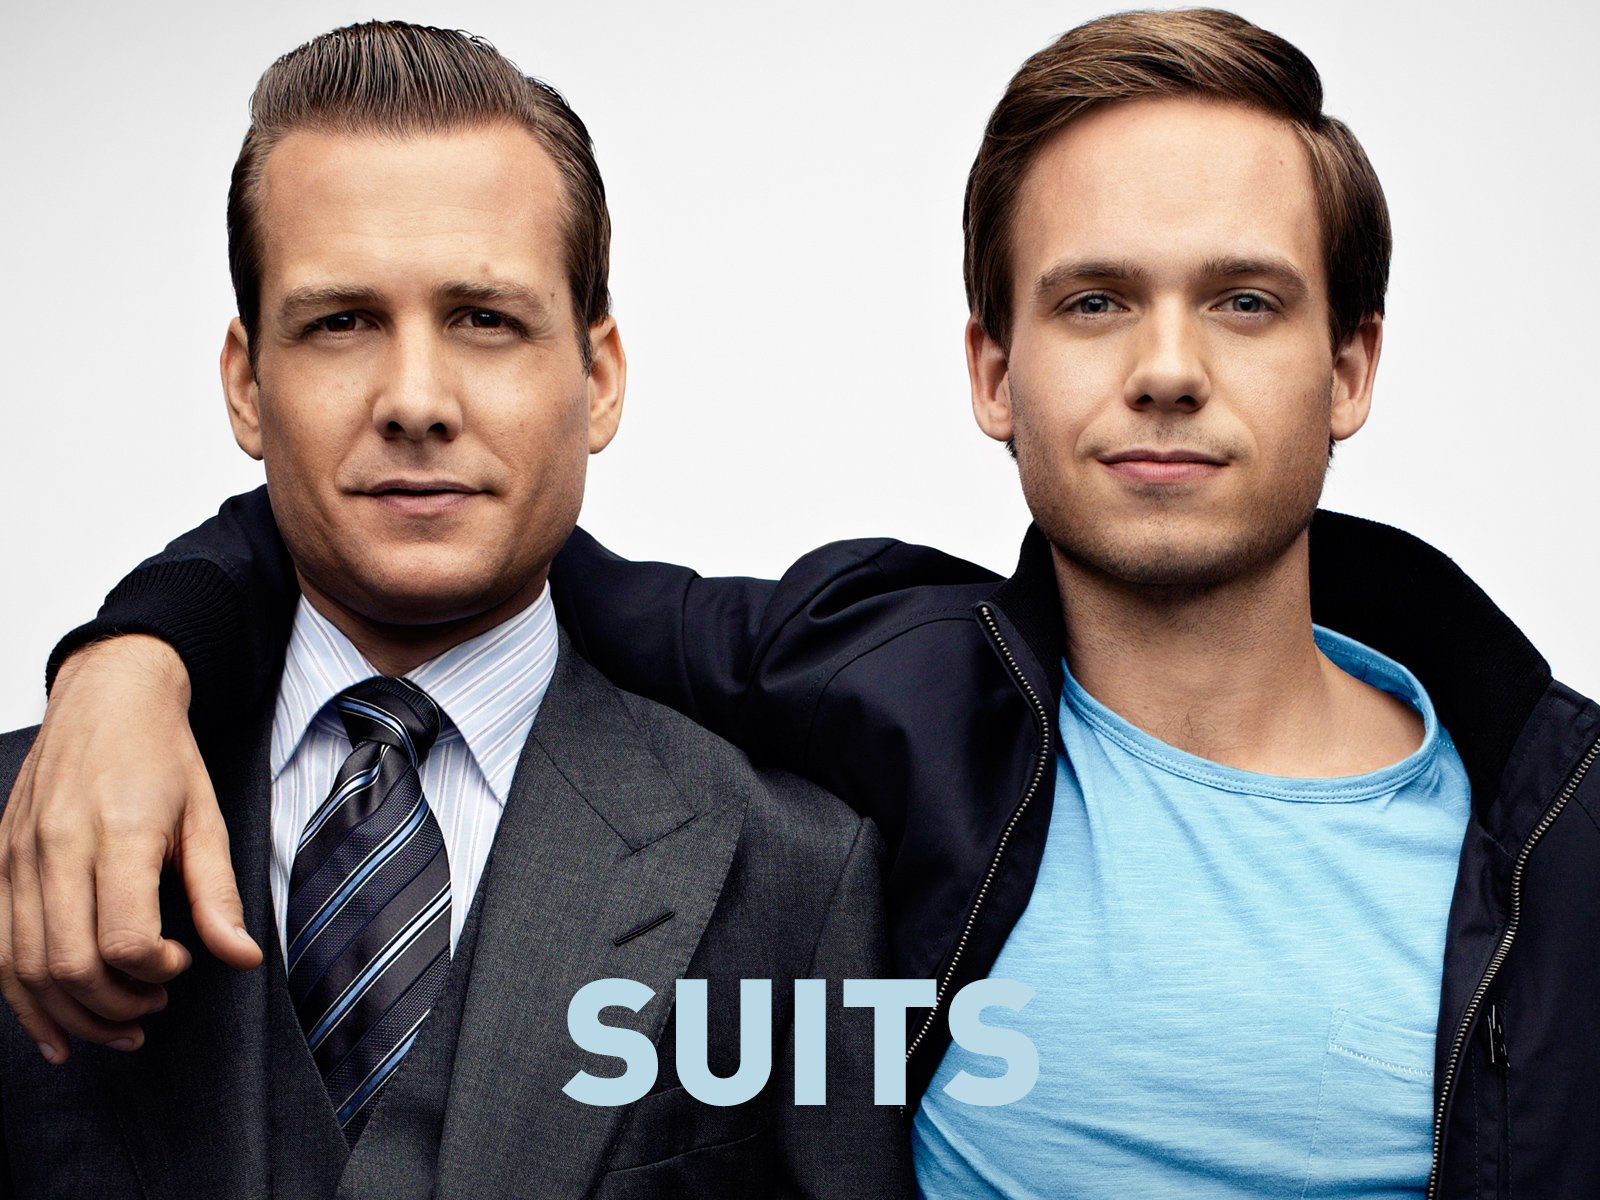 Amazon.com: Suits Season 1: Patrick J. Adams, Rick Hoffman ...